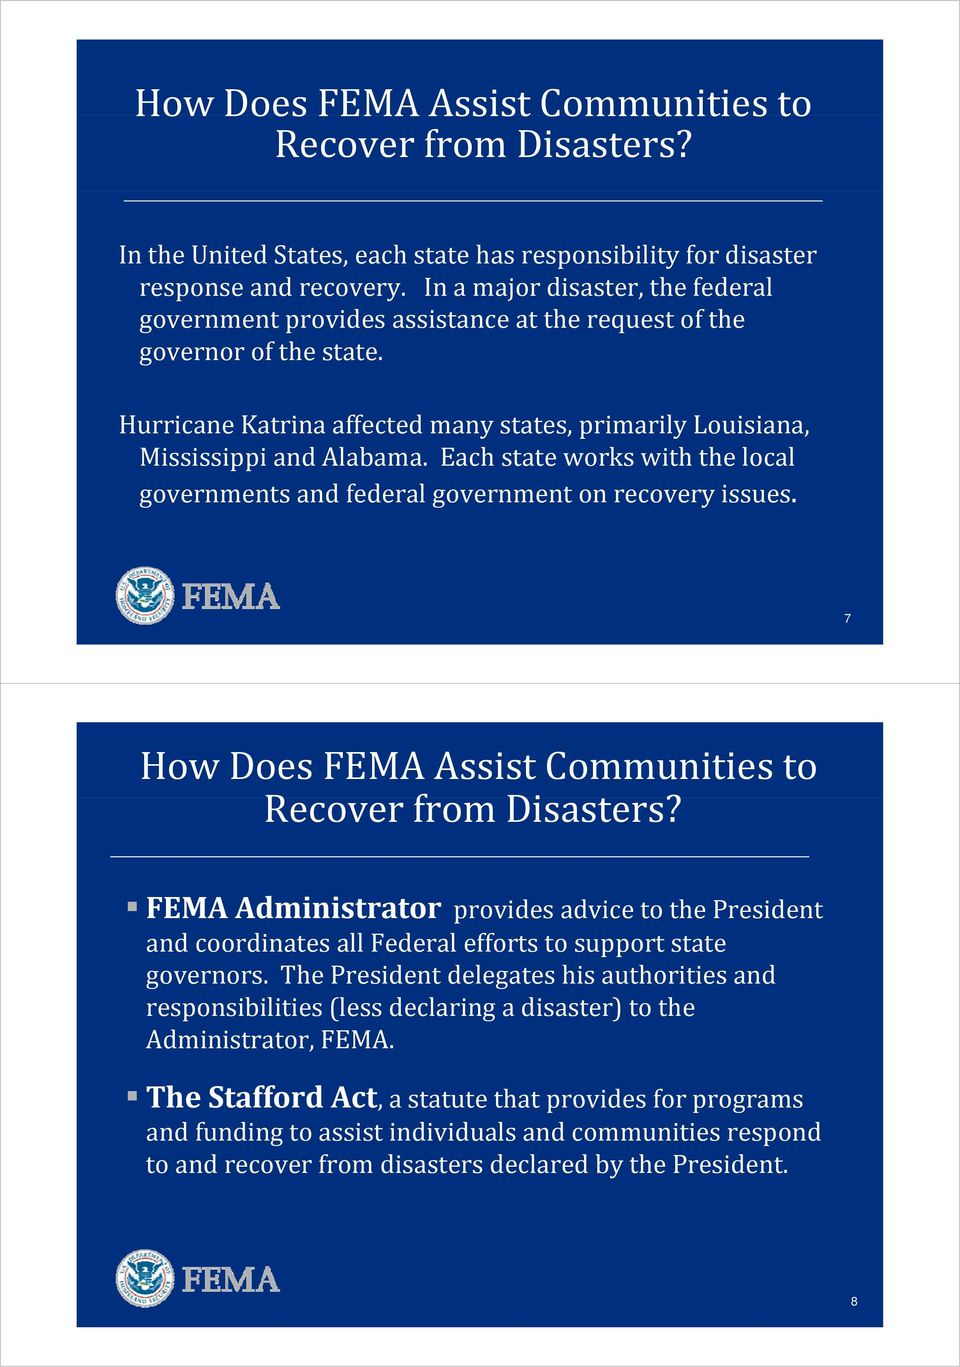 Hurricane Katrina affected many states, t primarily il Louisiana, i Mississippi and Alabama. Each state works with the local governments and federal government on recovery issues.